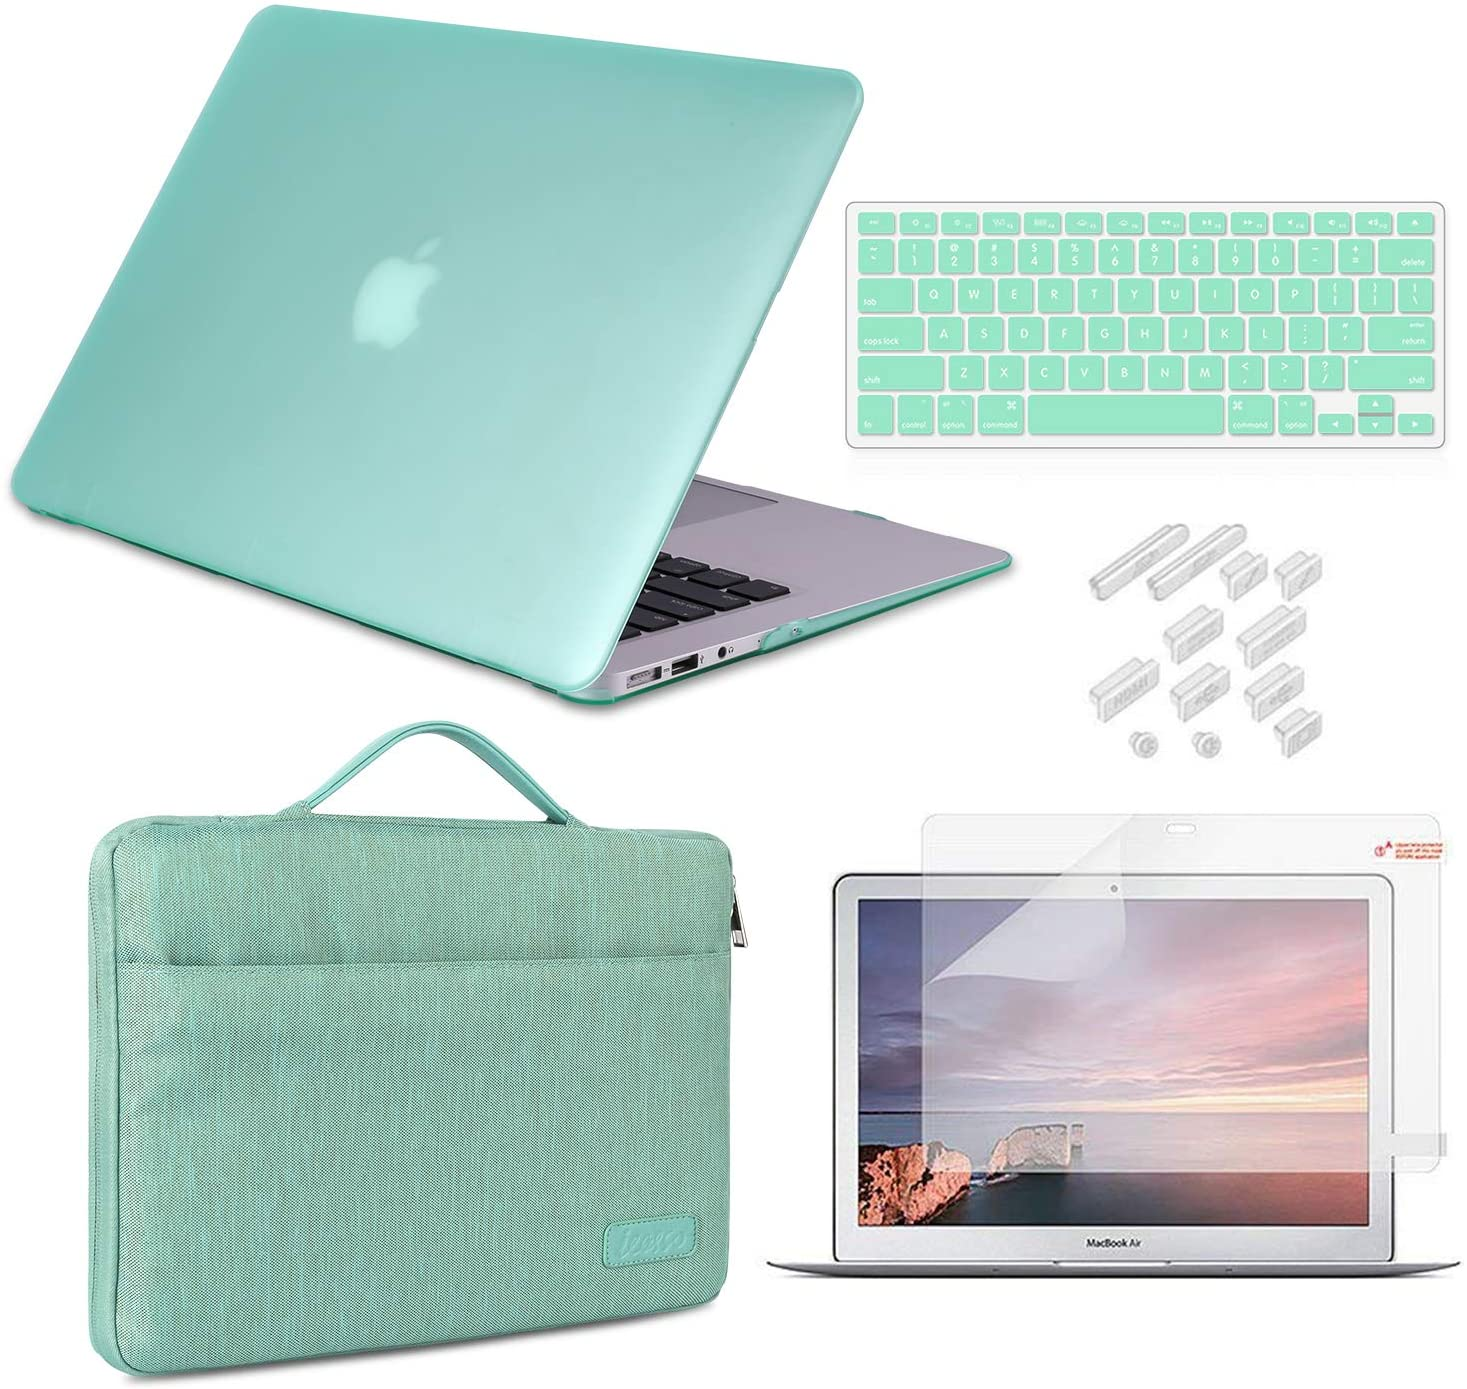 MacBook Air 13 Inch Case 2010-2017 Release Model A1369/A1466 Bundle 5 in 1, iCasso Hard Plastic Case, Sleeve, Screen Protector, Keyboard Cover & Dust Plug Compatible Old MacBook Air 13'' - Mint Green